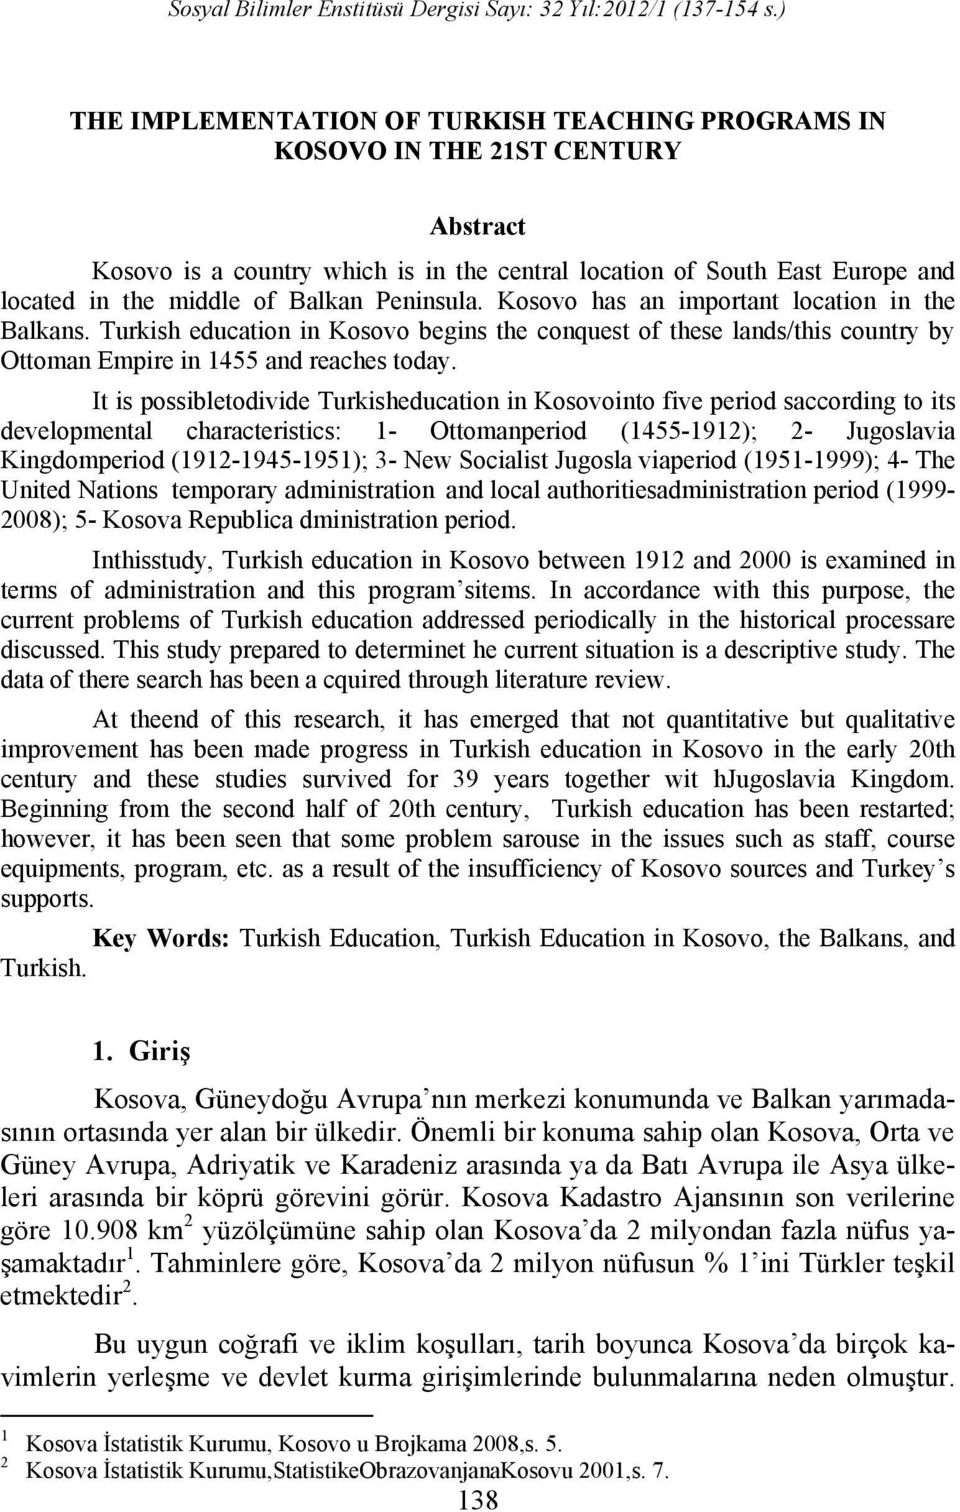 It is possibletodivide Turkisheducation in Kosovointo five period saccording to its developmental characteristics: 1- Ottomanperiod (1455-1912); 2- Jugoslavia Kingdomperiod (1912-1945-1951); 3- New